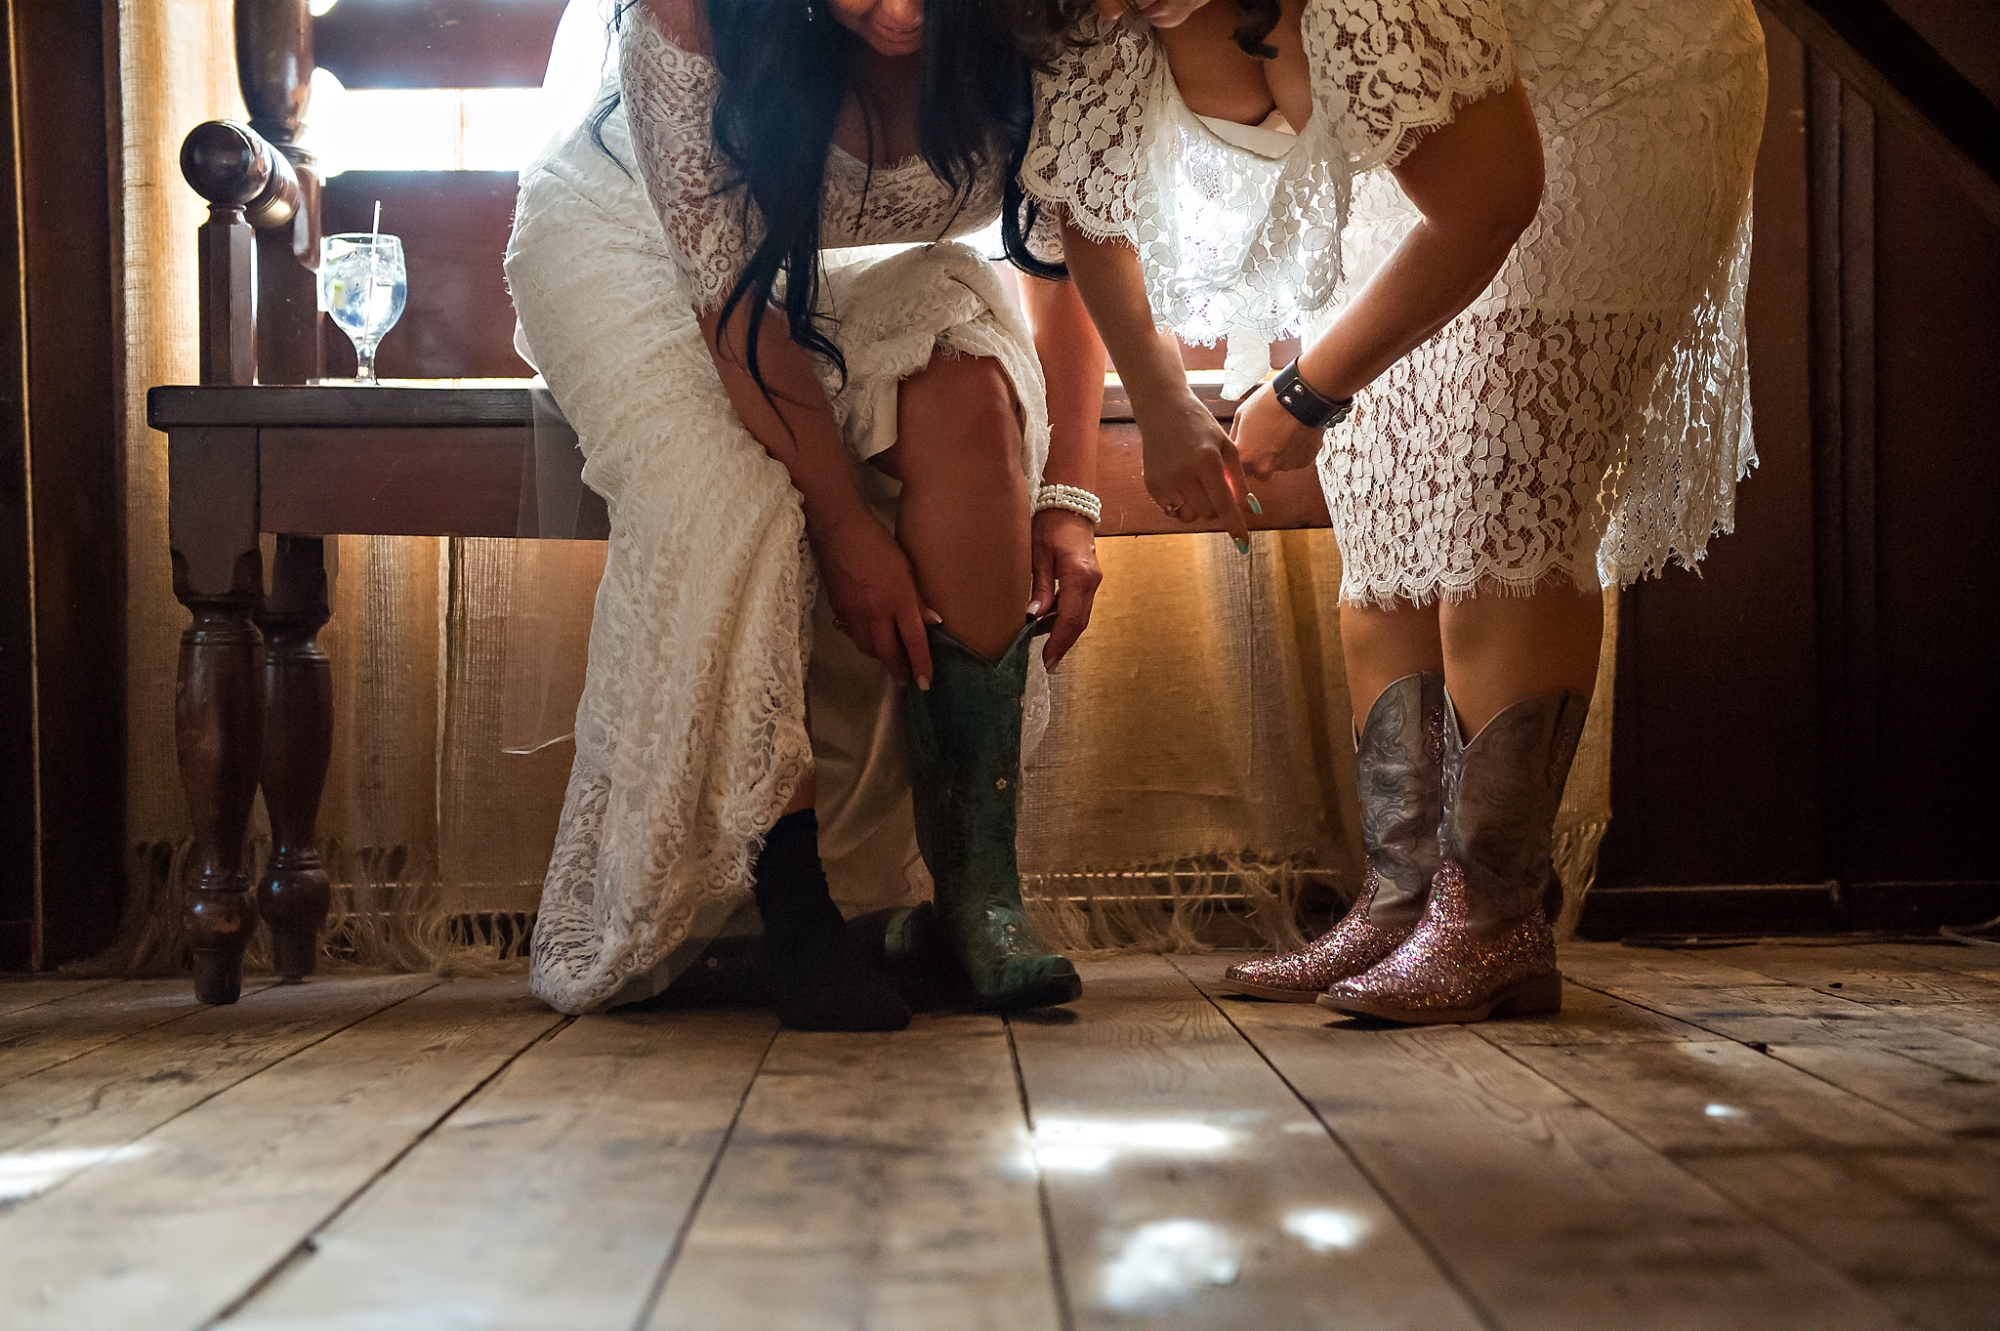 Jacks-Barn-Wedding-Janine-Collette-Photography59